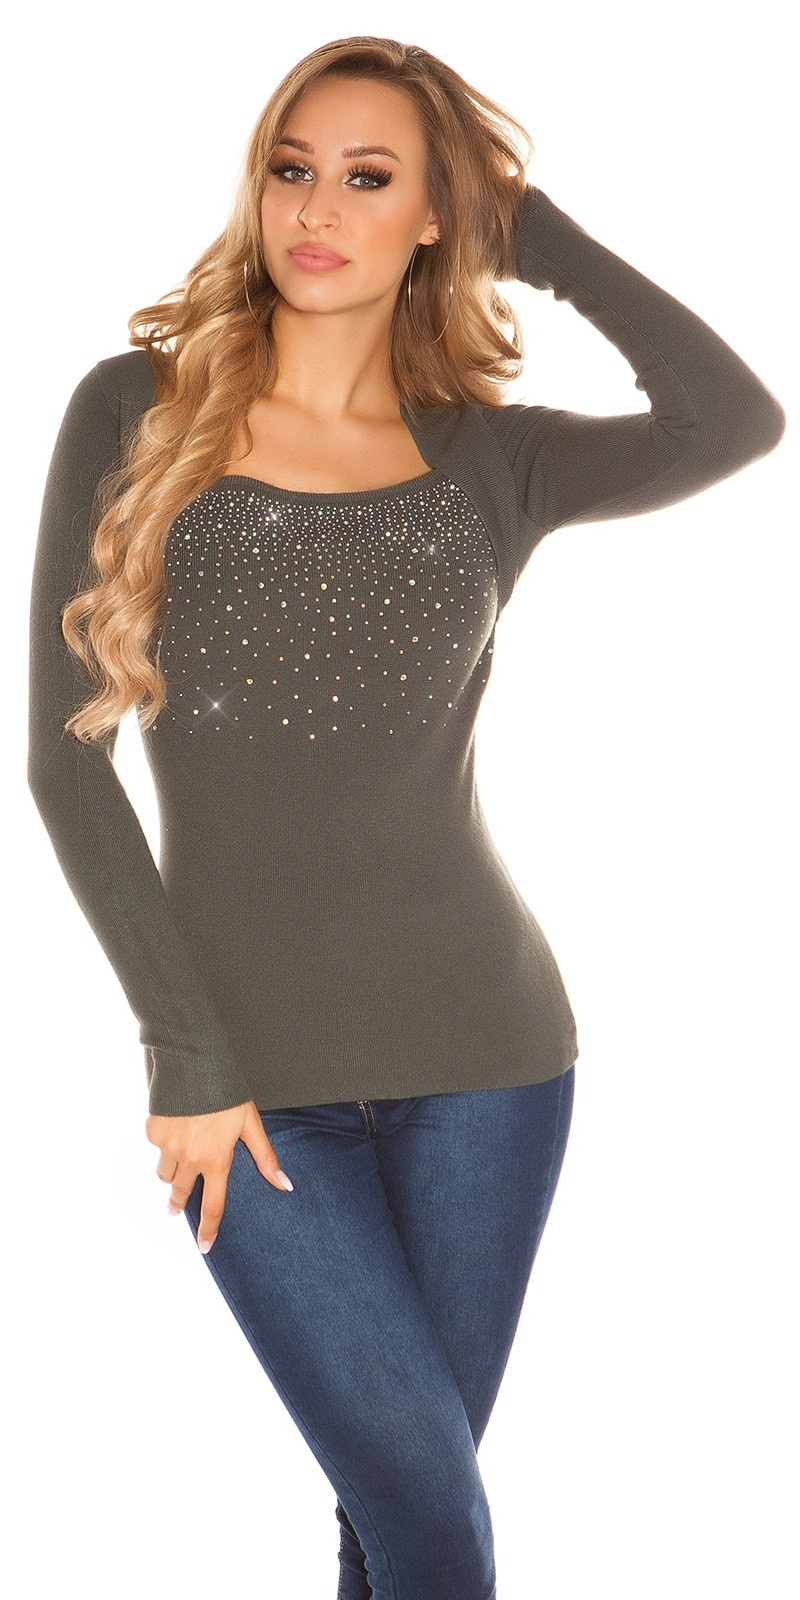 Sexy 2in1 sweater with rhinestones Khaki